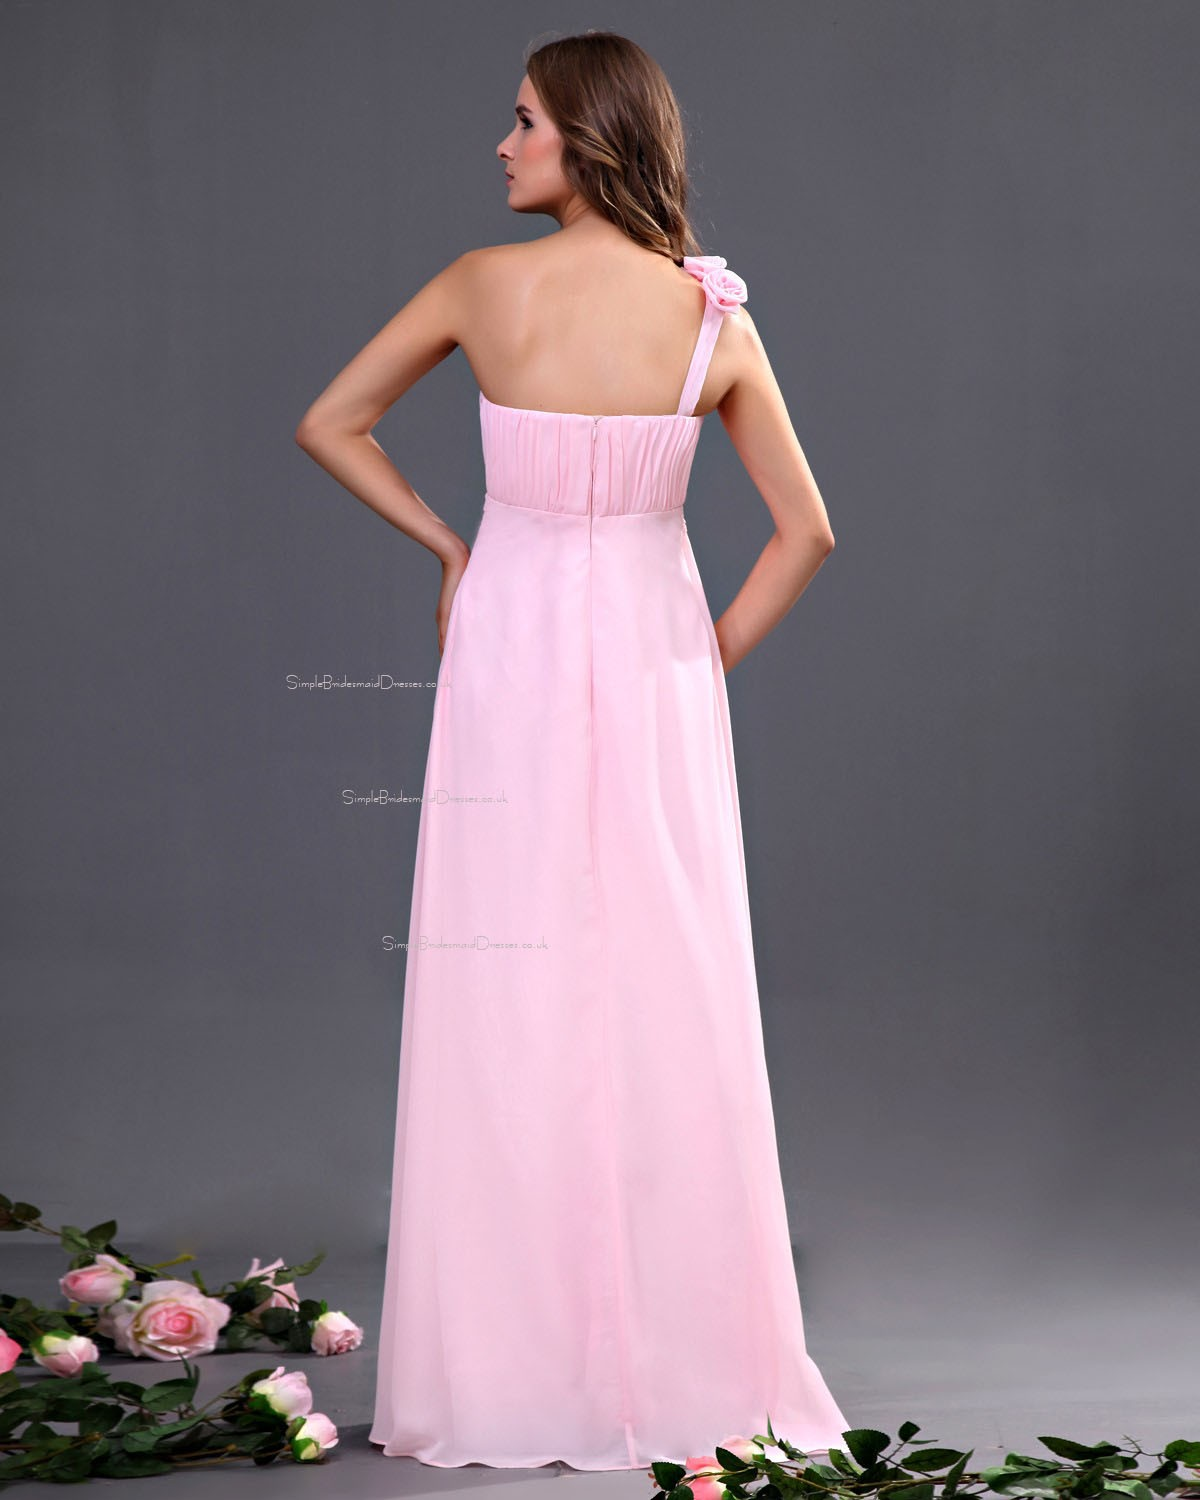 Bridesmaid dresses in sydney gallery braidsmaid dress cocktail pink chiffon rufflesflowersdraped sleeveless floor length pink chiffon rufflesflowersdraped sleeveless floor length bridesmaid dress sbmd10552 87 ombrellifo Gallery